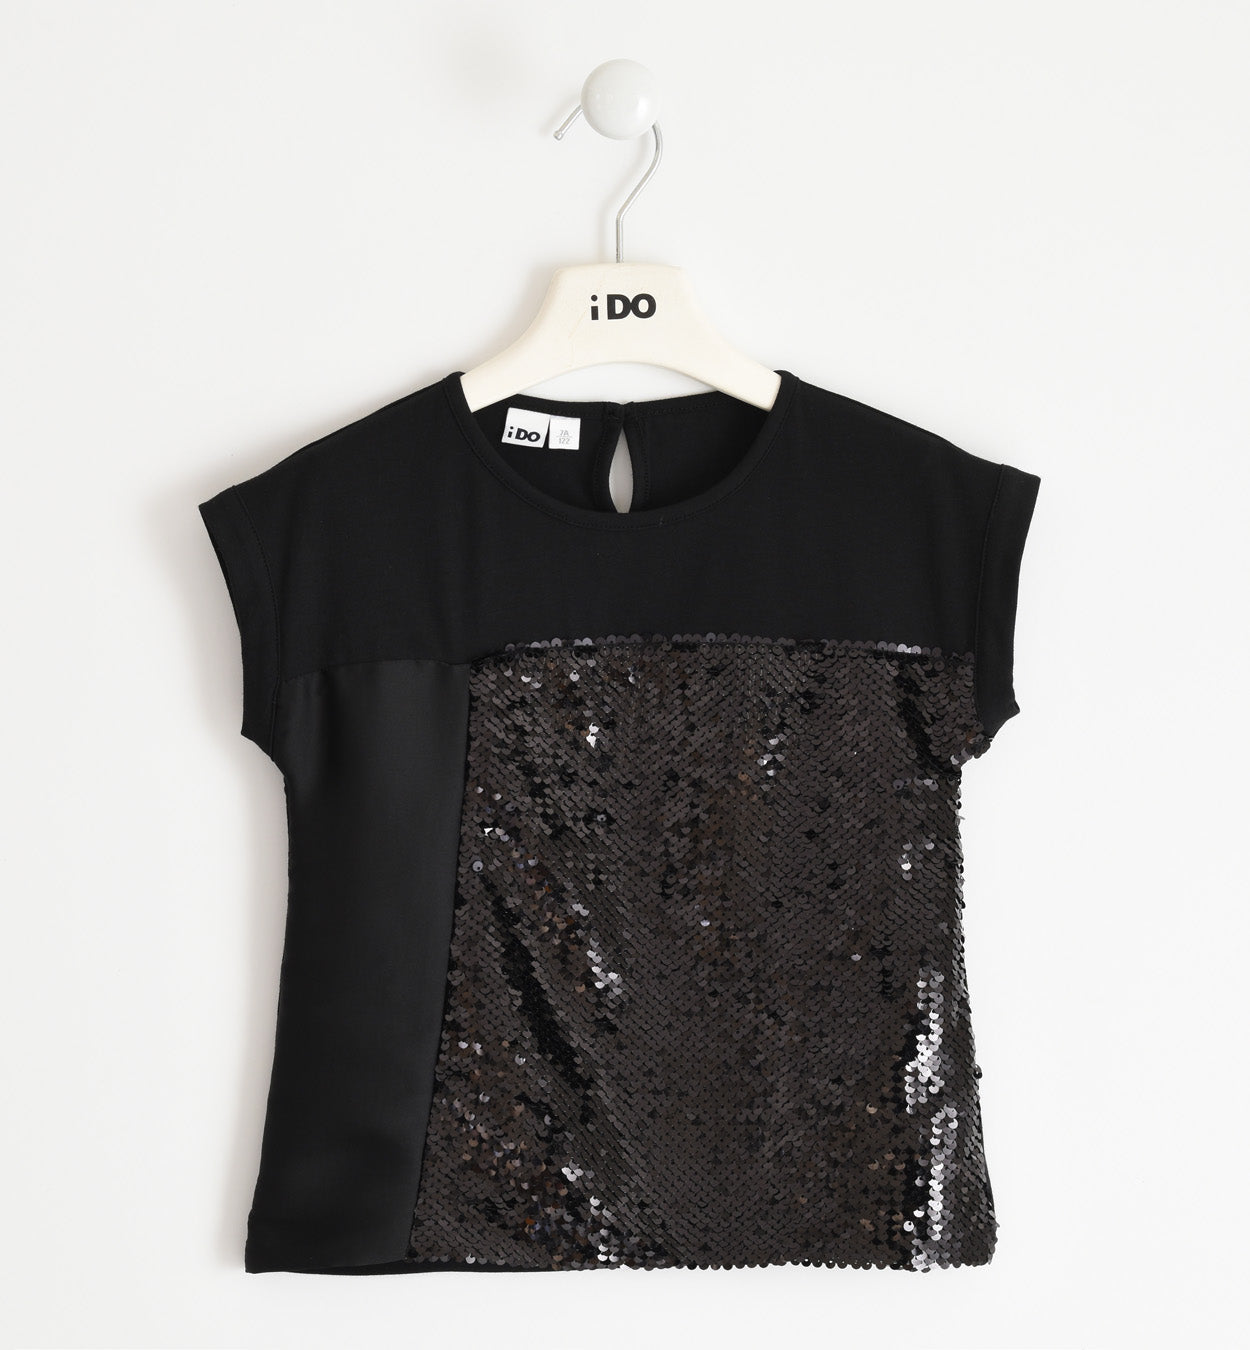 iDO Girls sequin t-shirt - 42494 0658